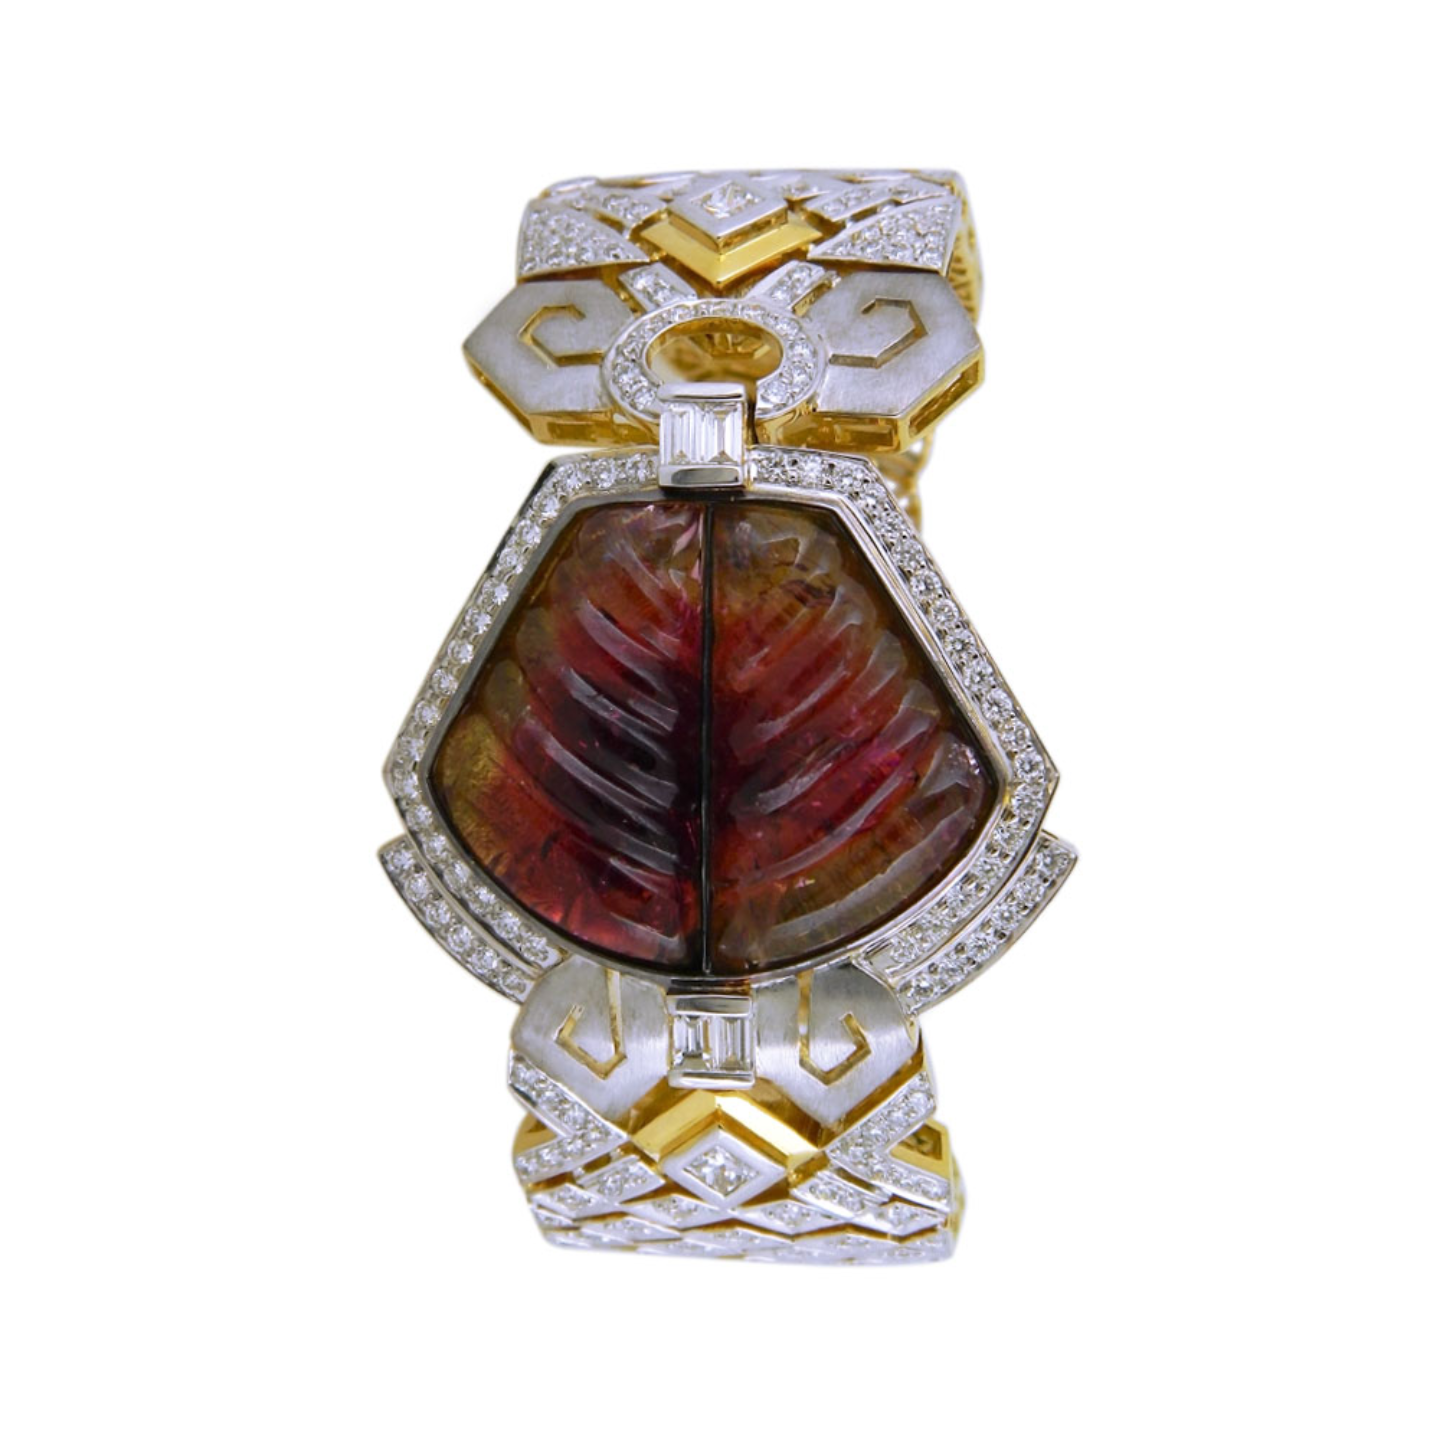 A broad diamond Tourmaline bracelet with geometric inspired filigree, in mix hues of gold